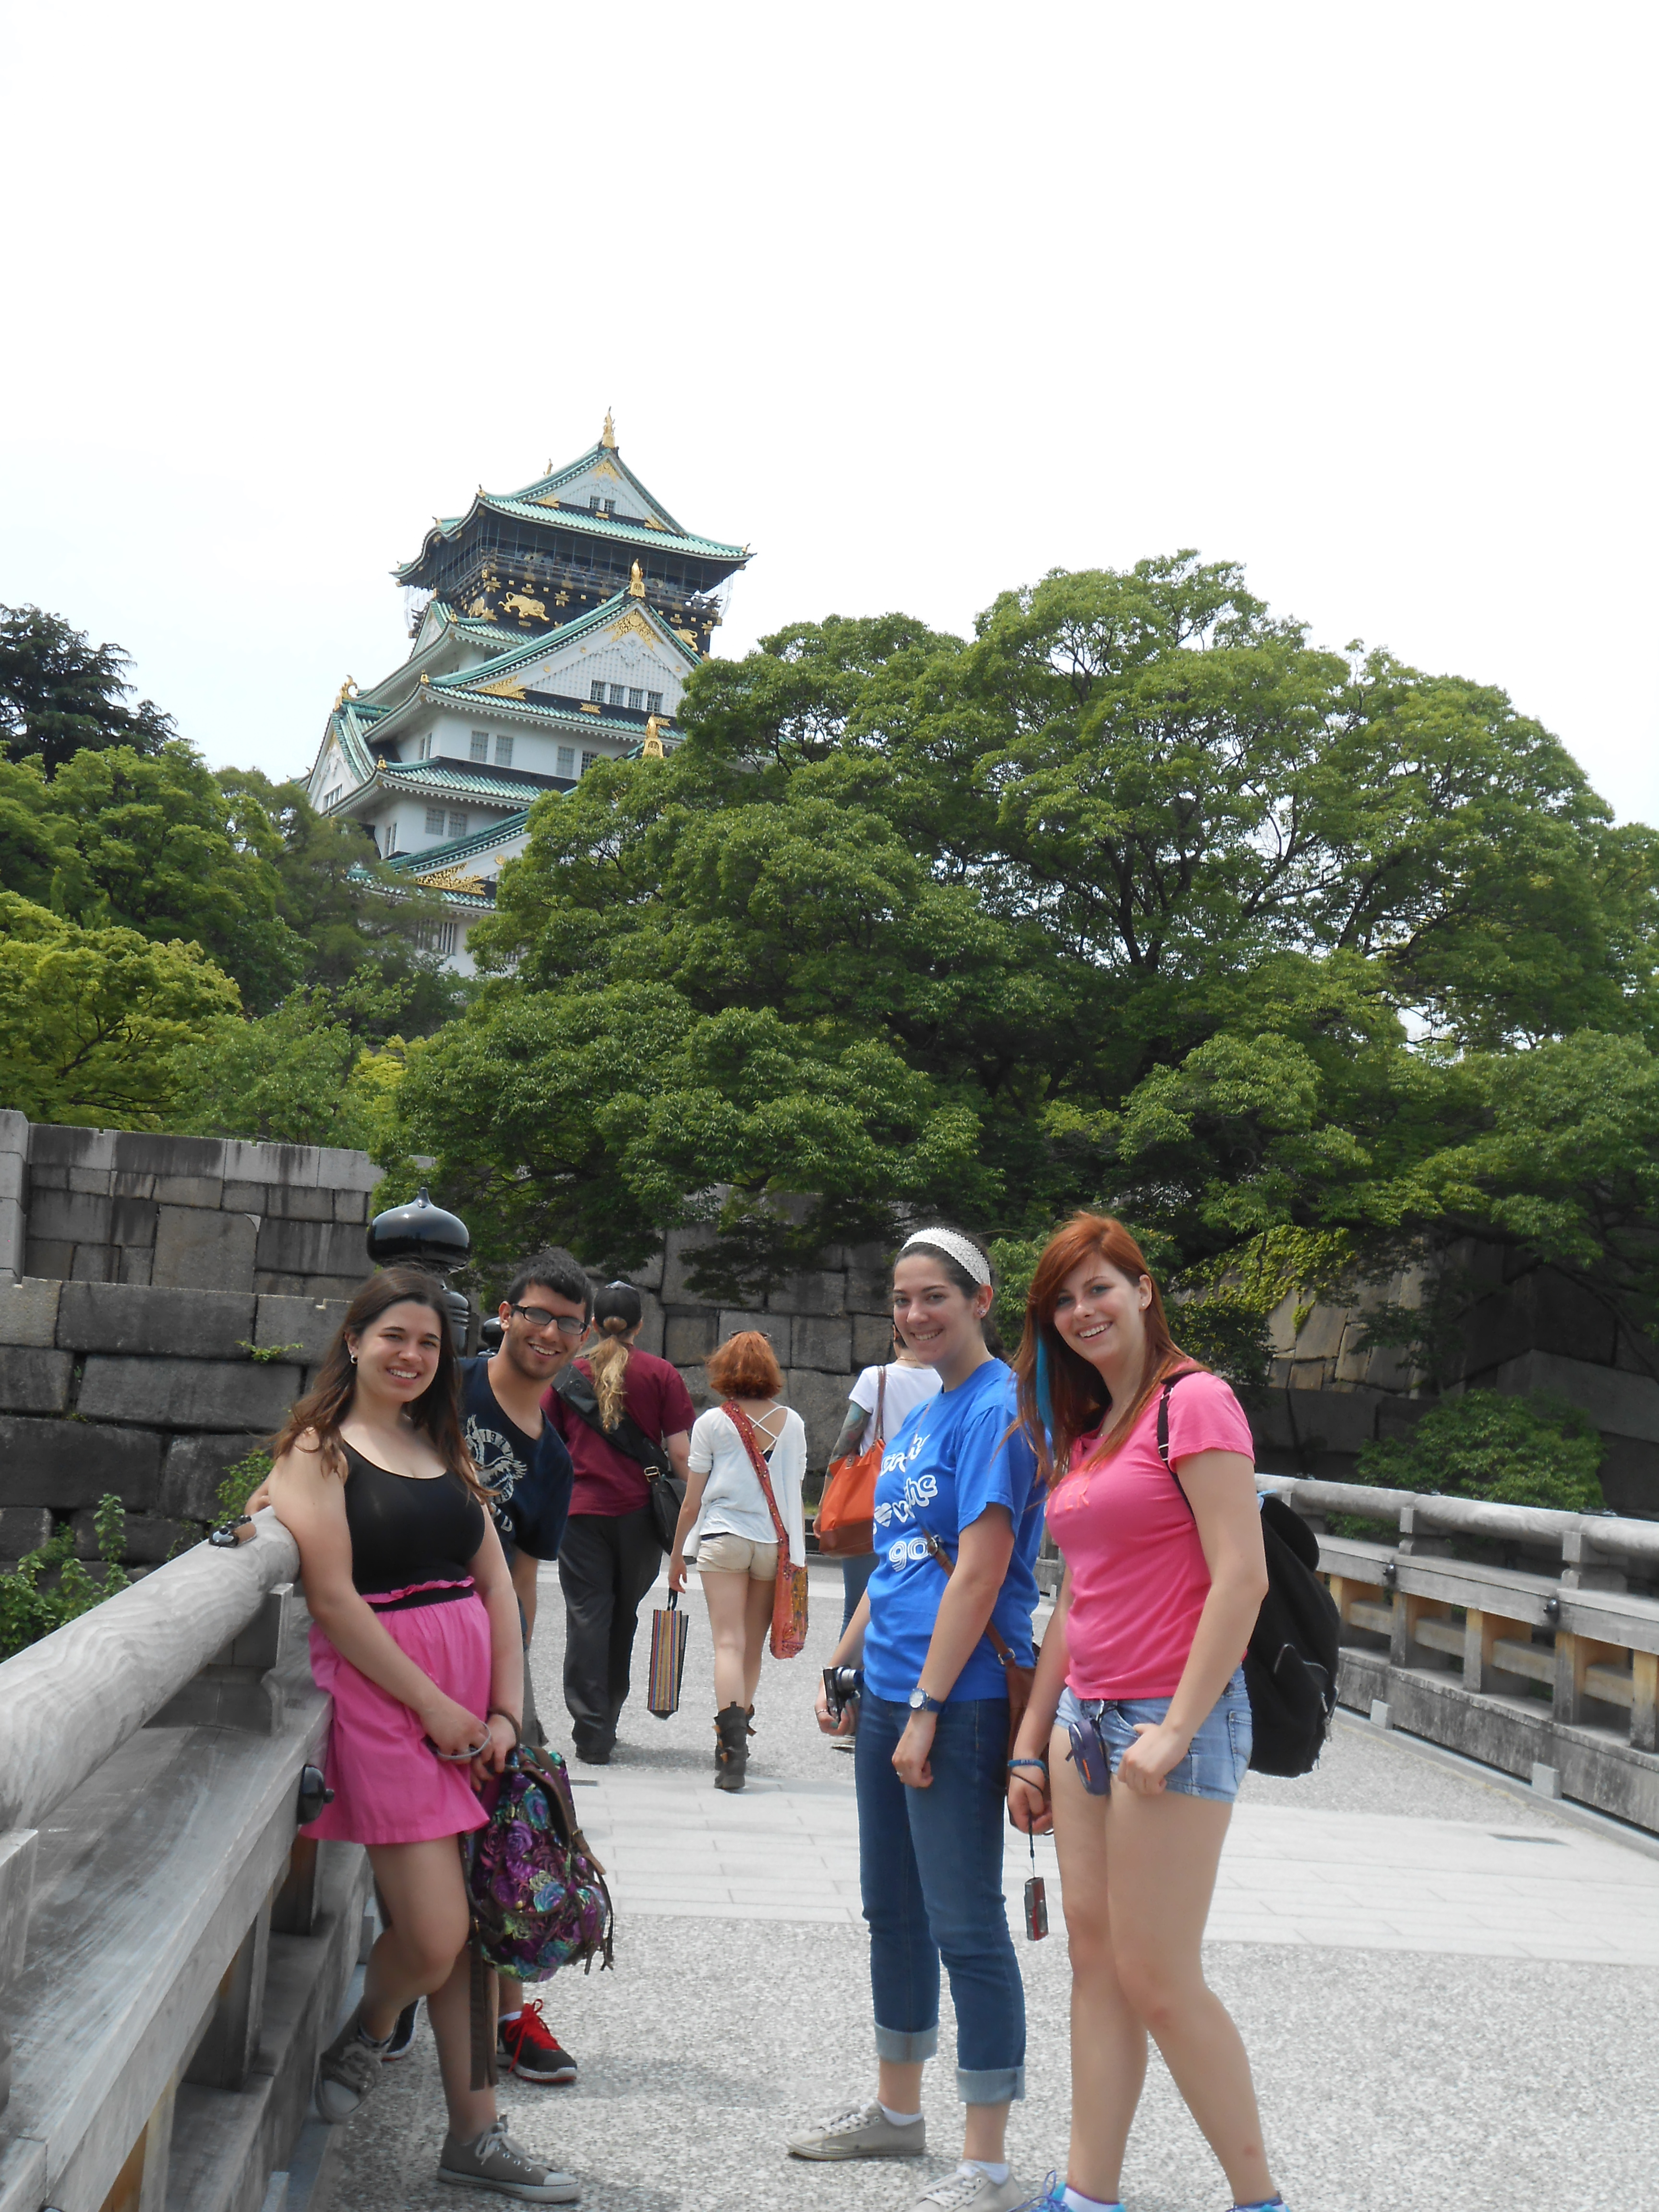 Students on bridge in front of Japanese castle